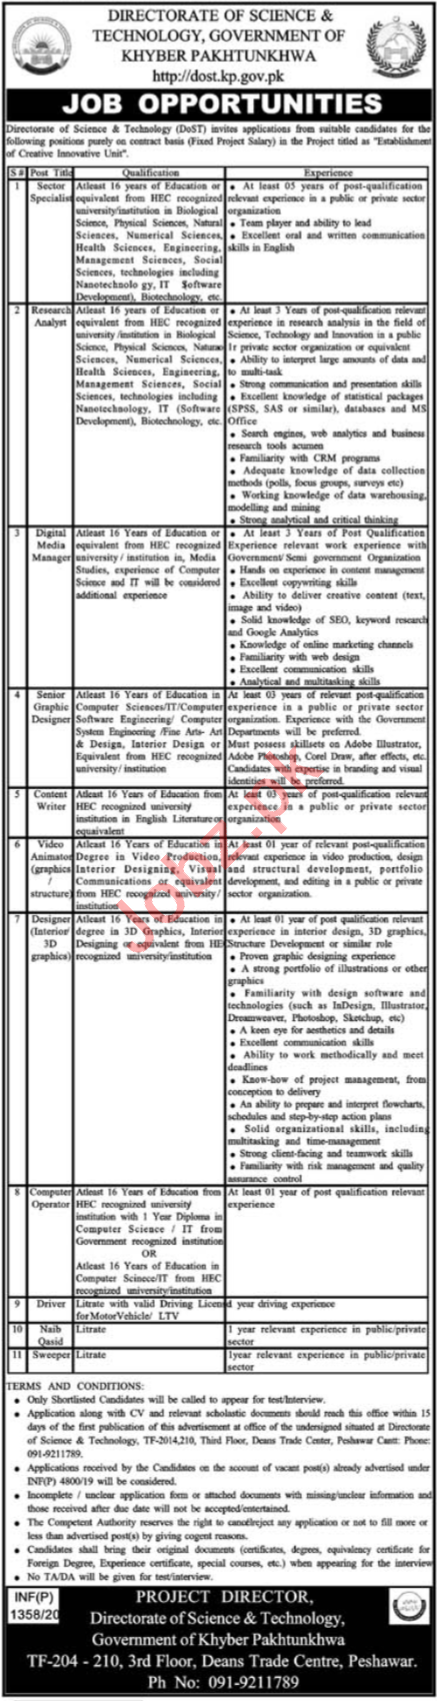 Directorate of Science & Technology DoST KPK Jobs 2020